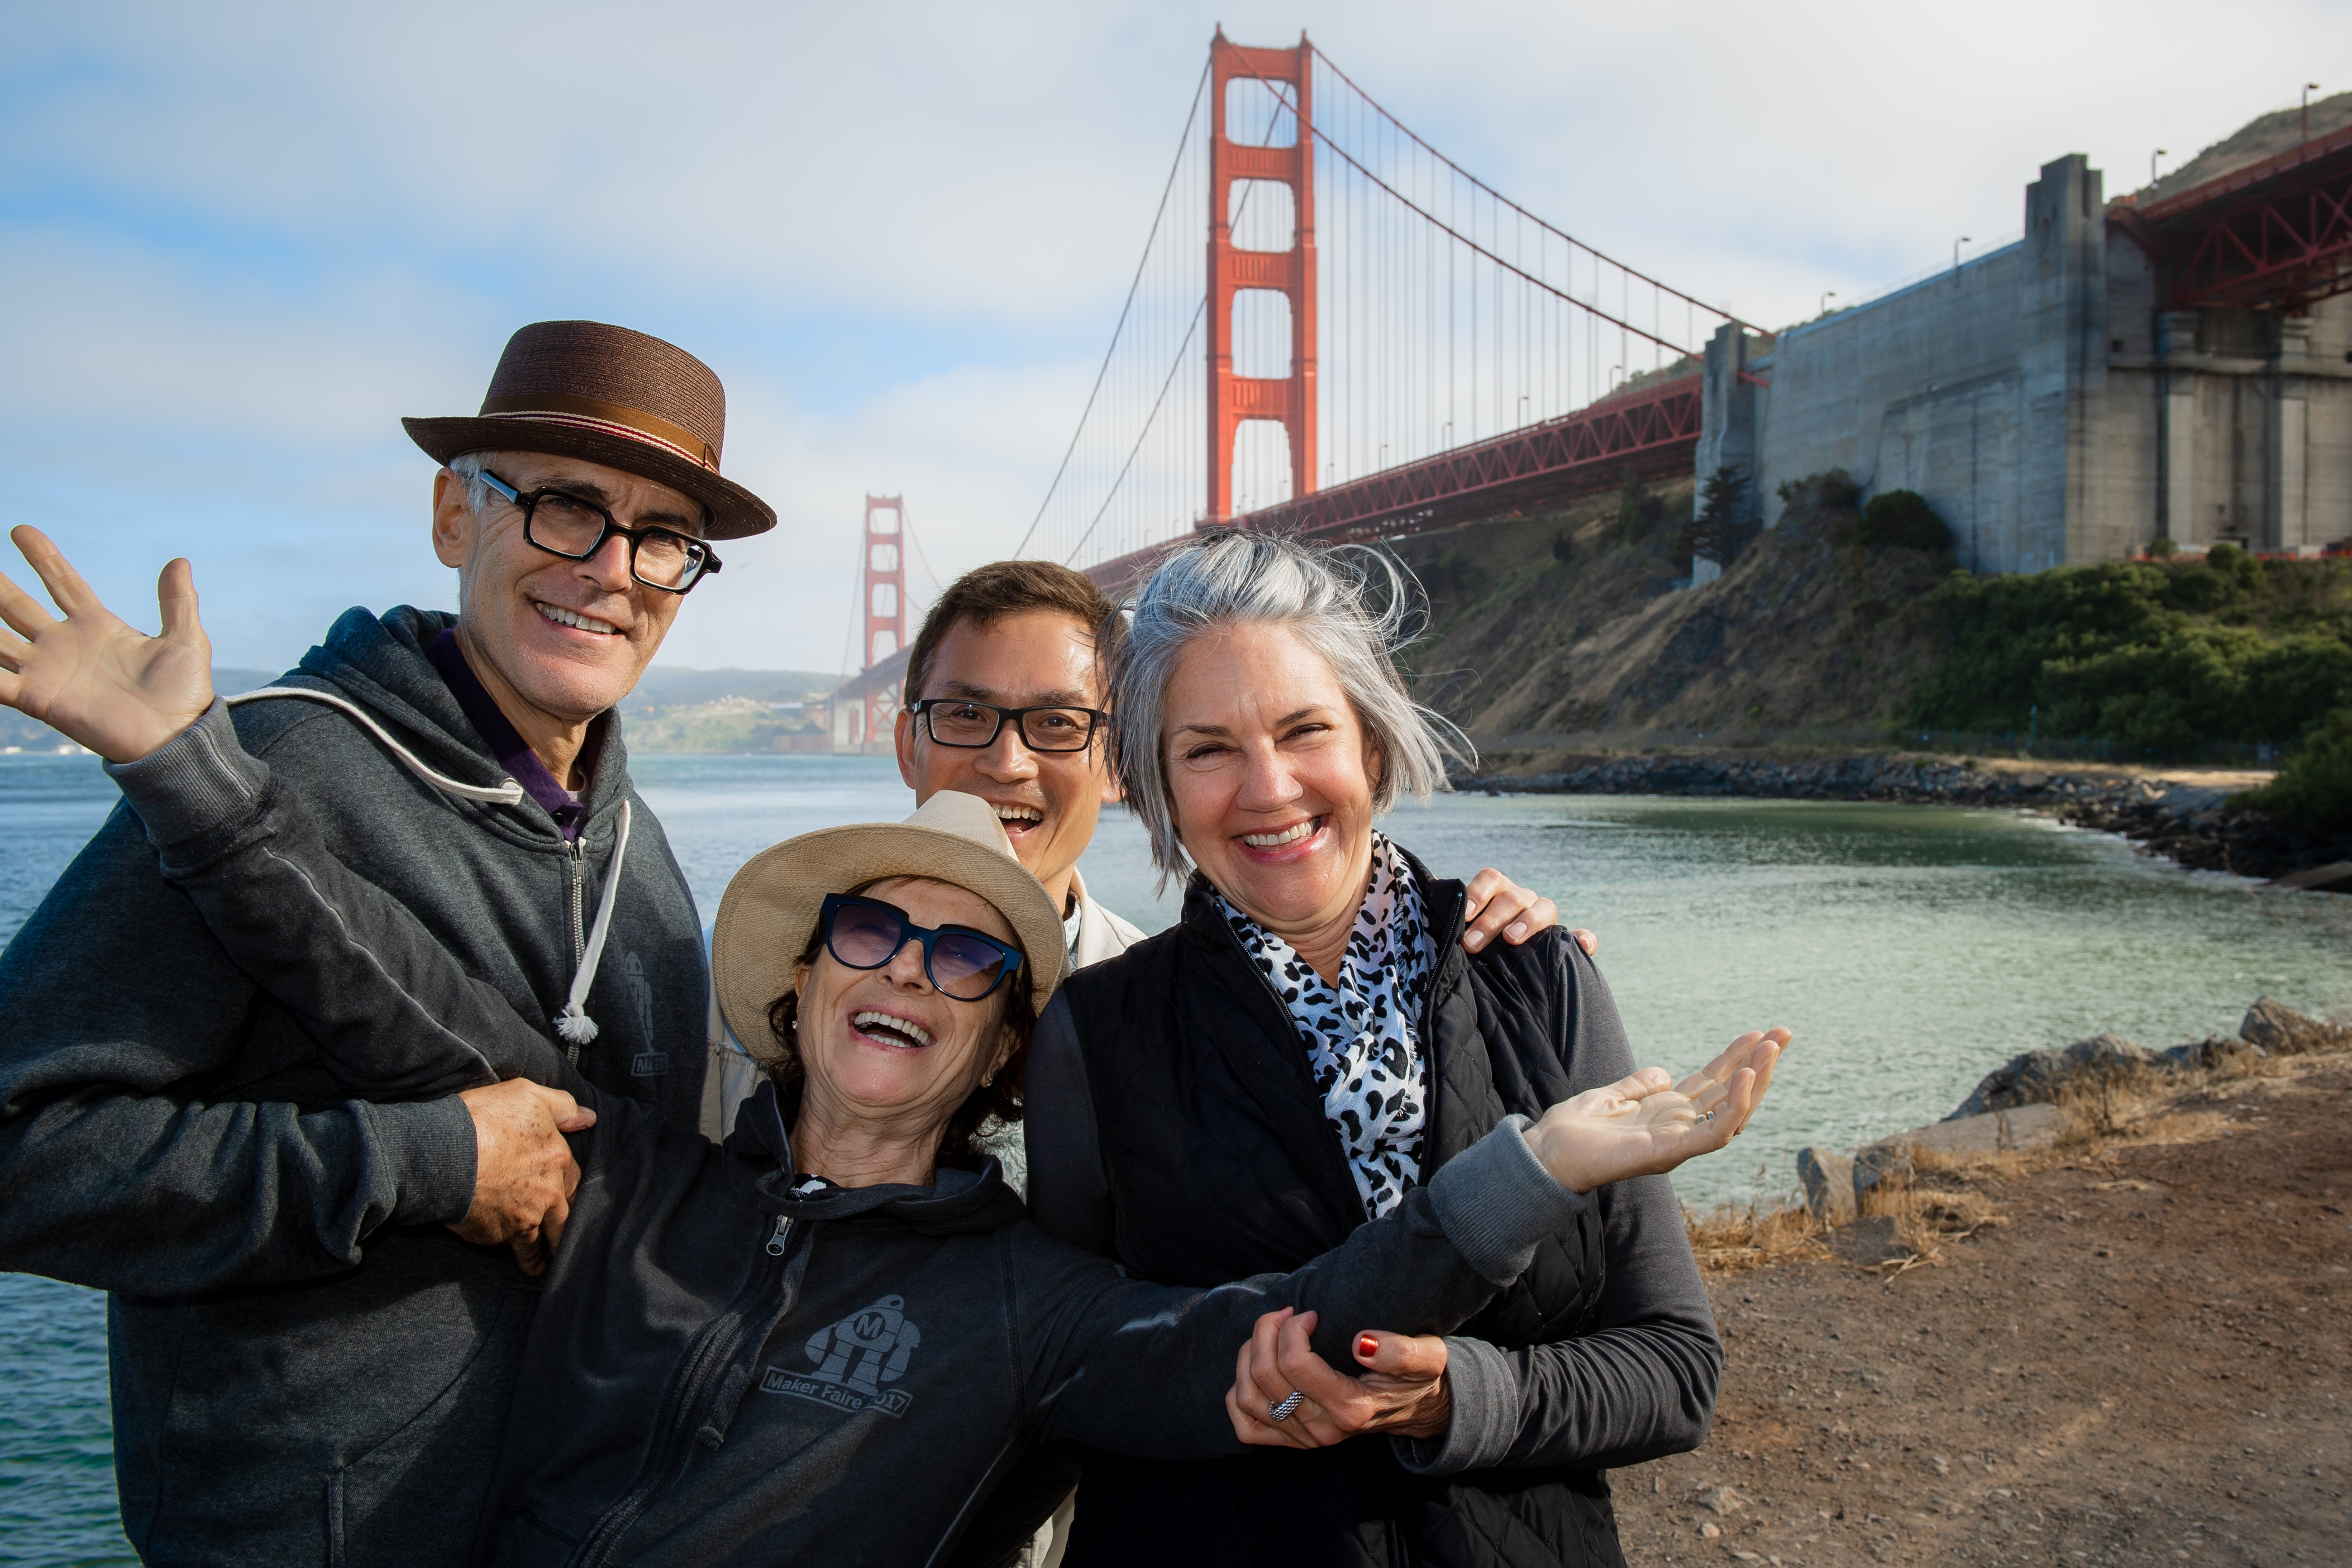 10-Day West Coast National Parks & Theme Parks Tour From San Francisco